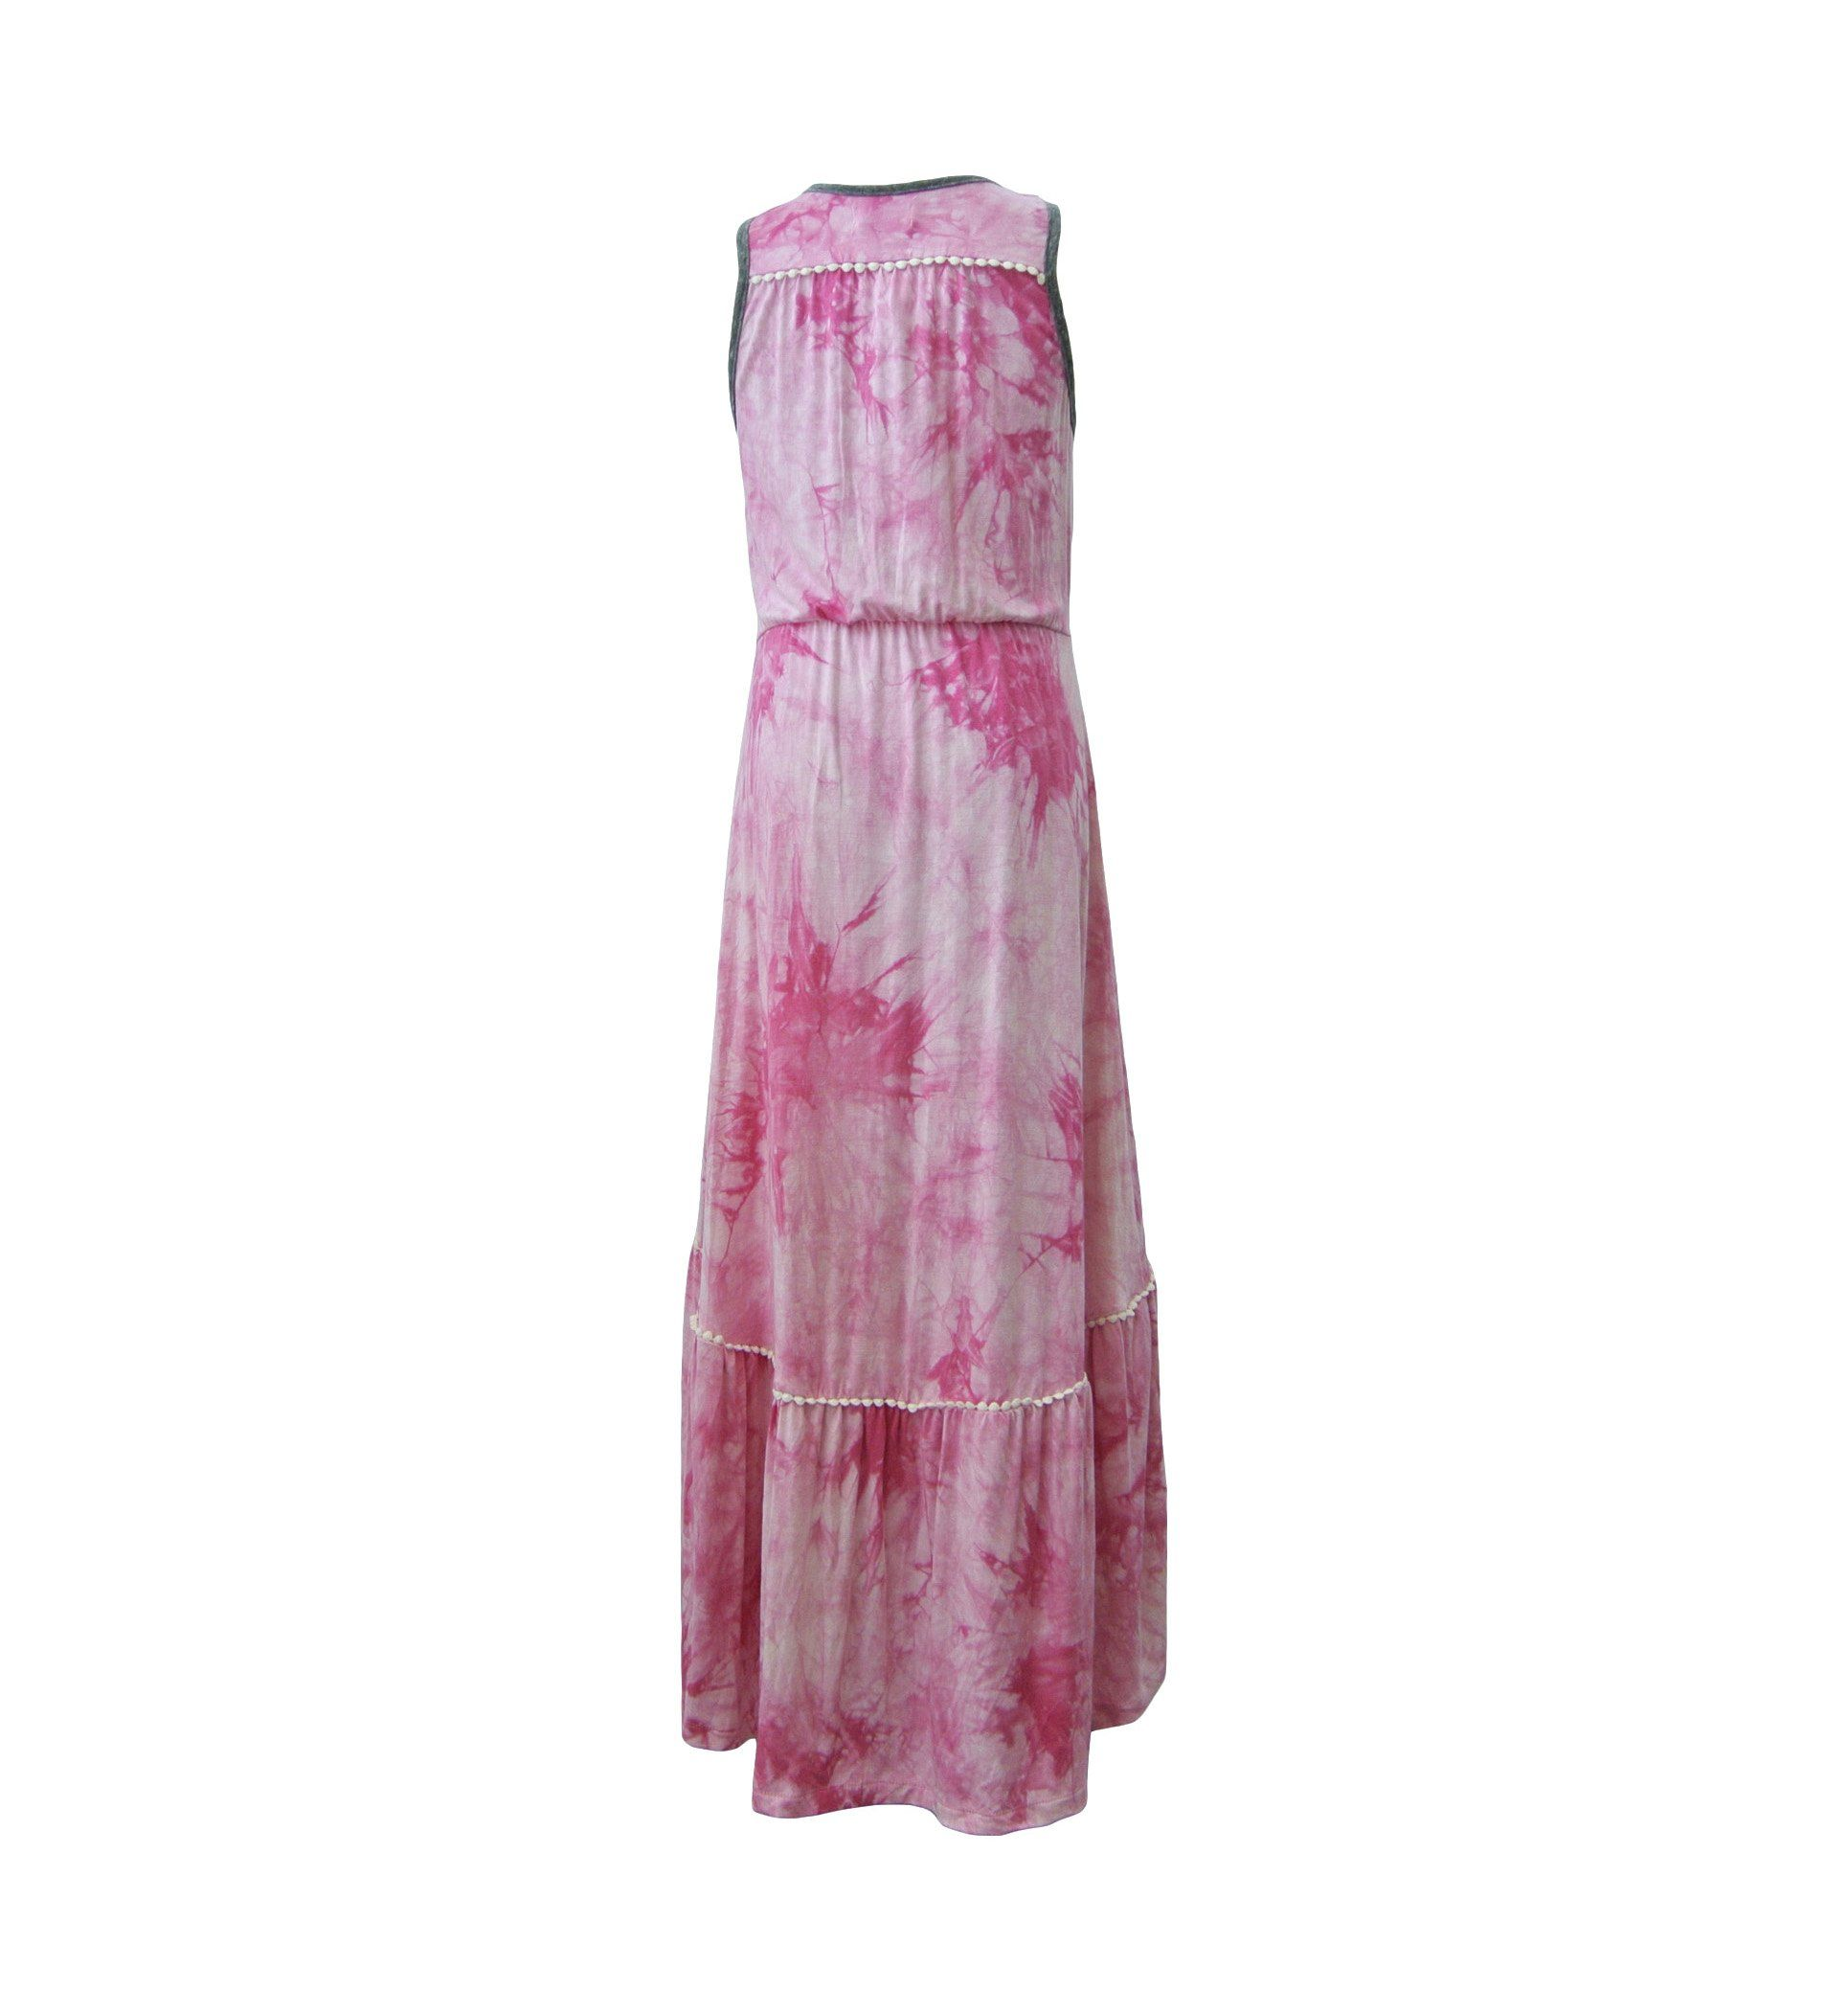 Helen Sleeveless Maxi Dress Hippie At Heart